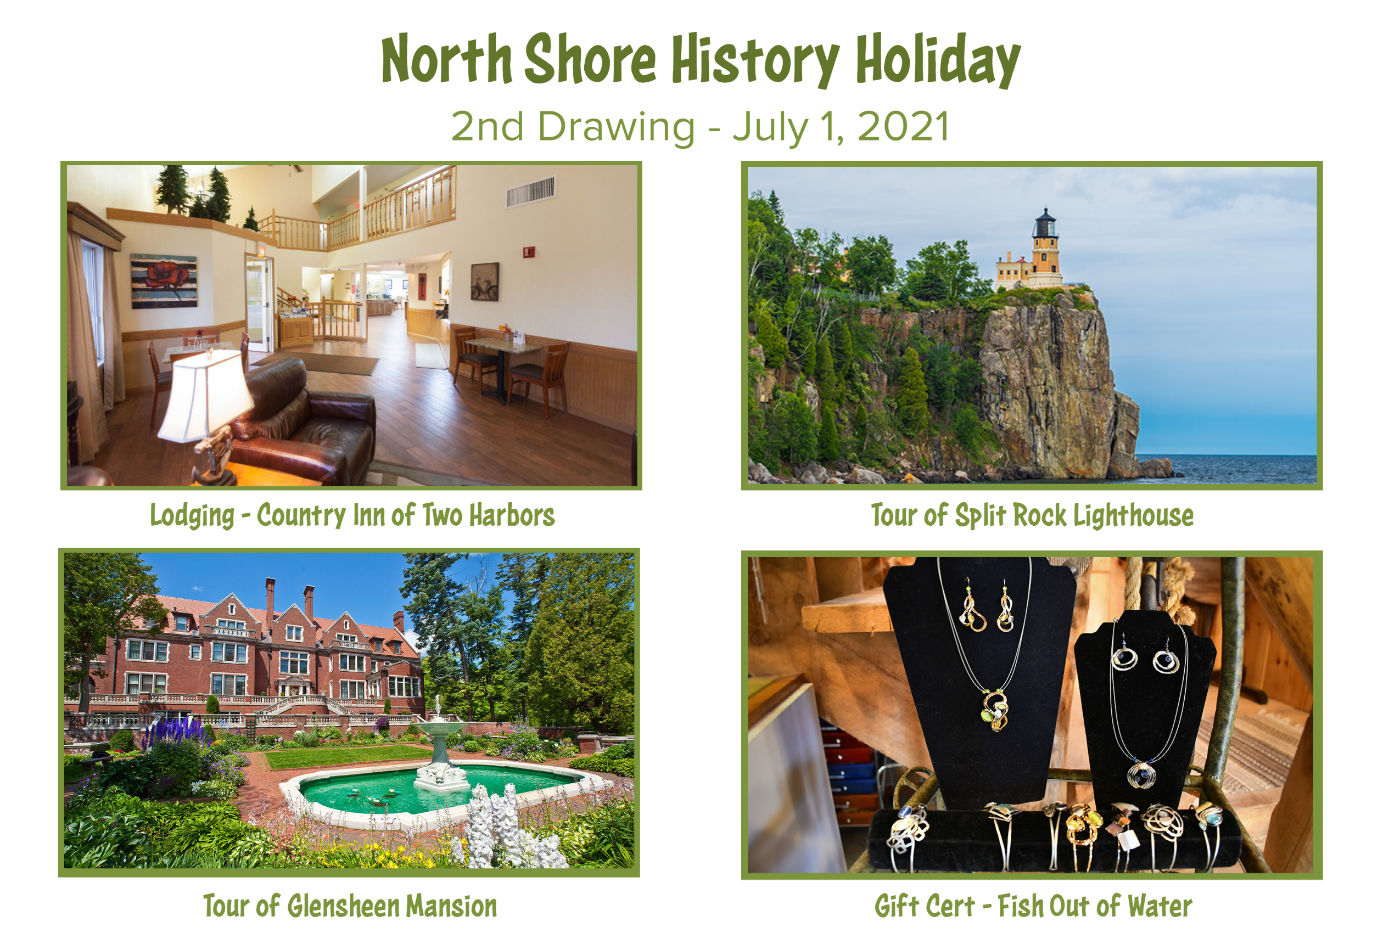 North Shore History Holiday. 2nd Drawing - July 1, 2021. Lodging - Country Inn of Two Harbors. Tour of Split Rock Lighthouse. Tour of Glensheen Mansion. Gift Cert - Fish Out of Water.